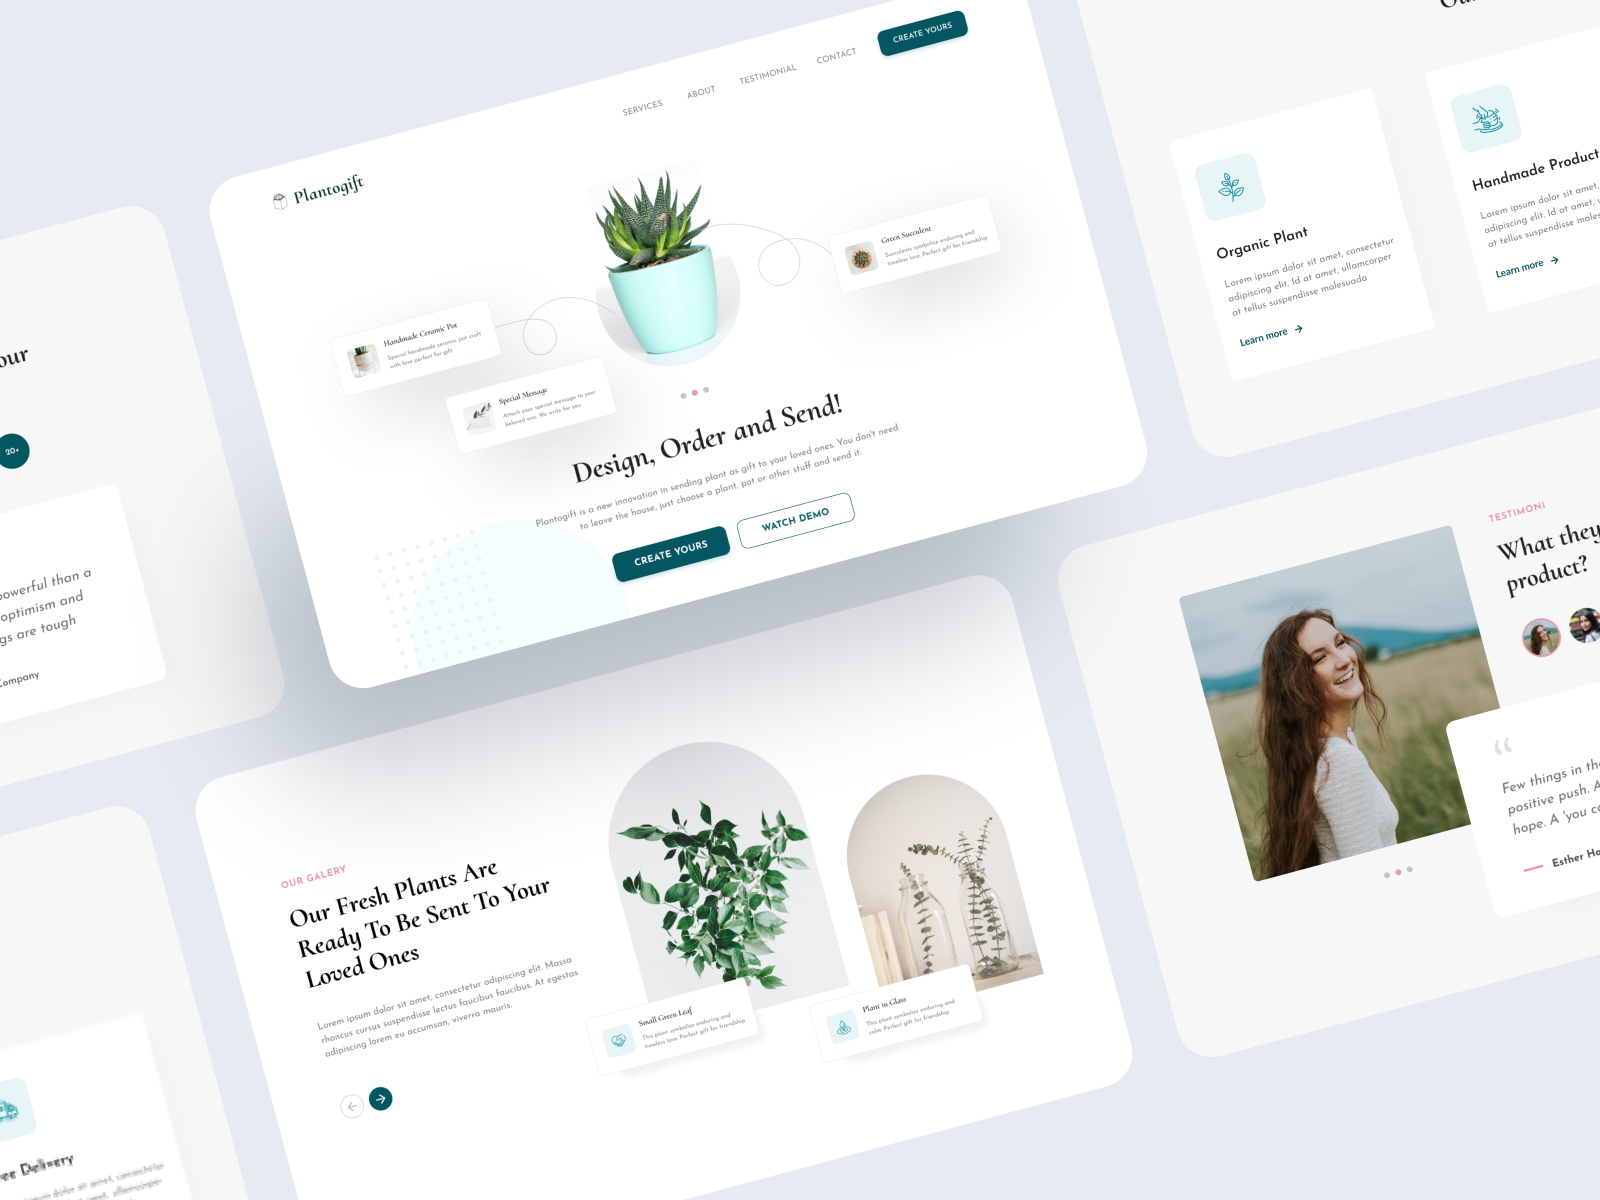 PlantoGift - Landing Page by Mohammad Firdaus